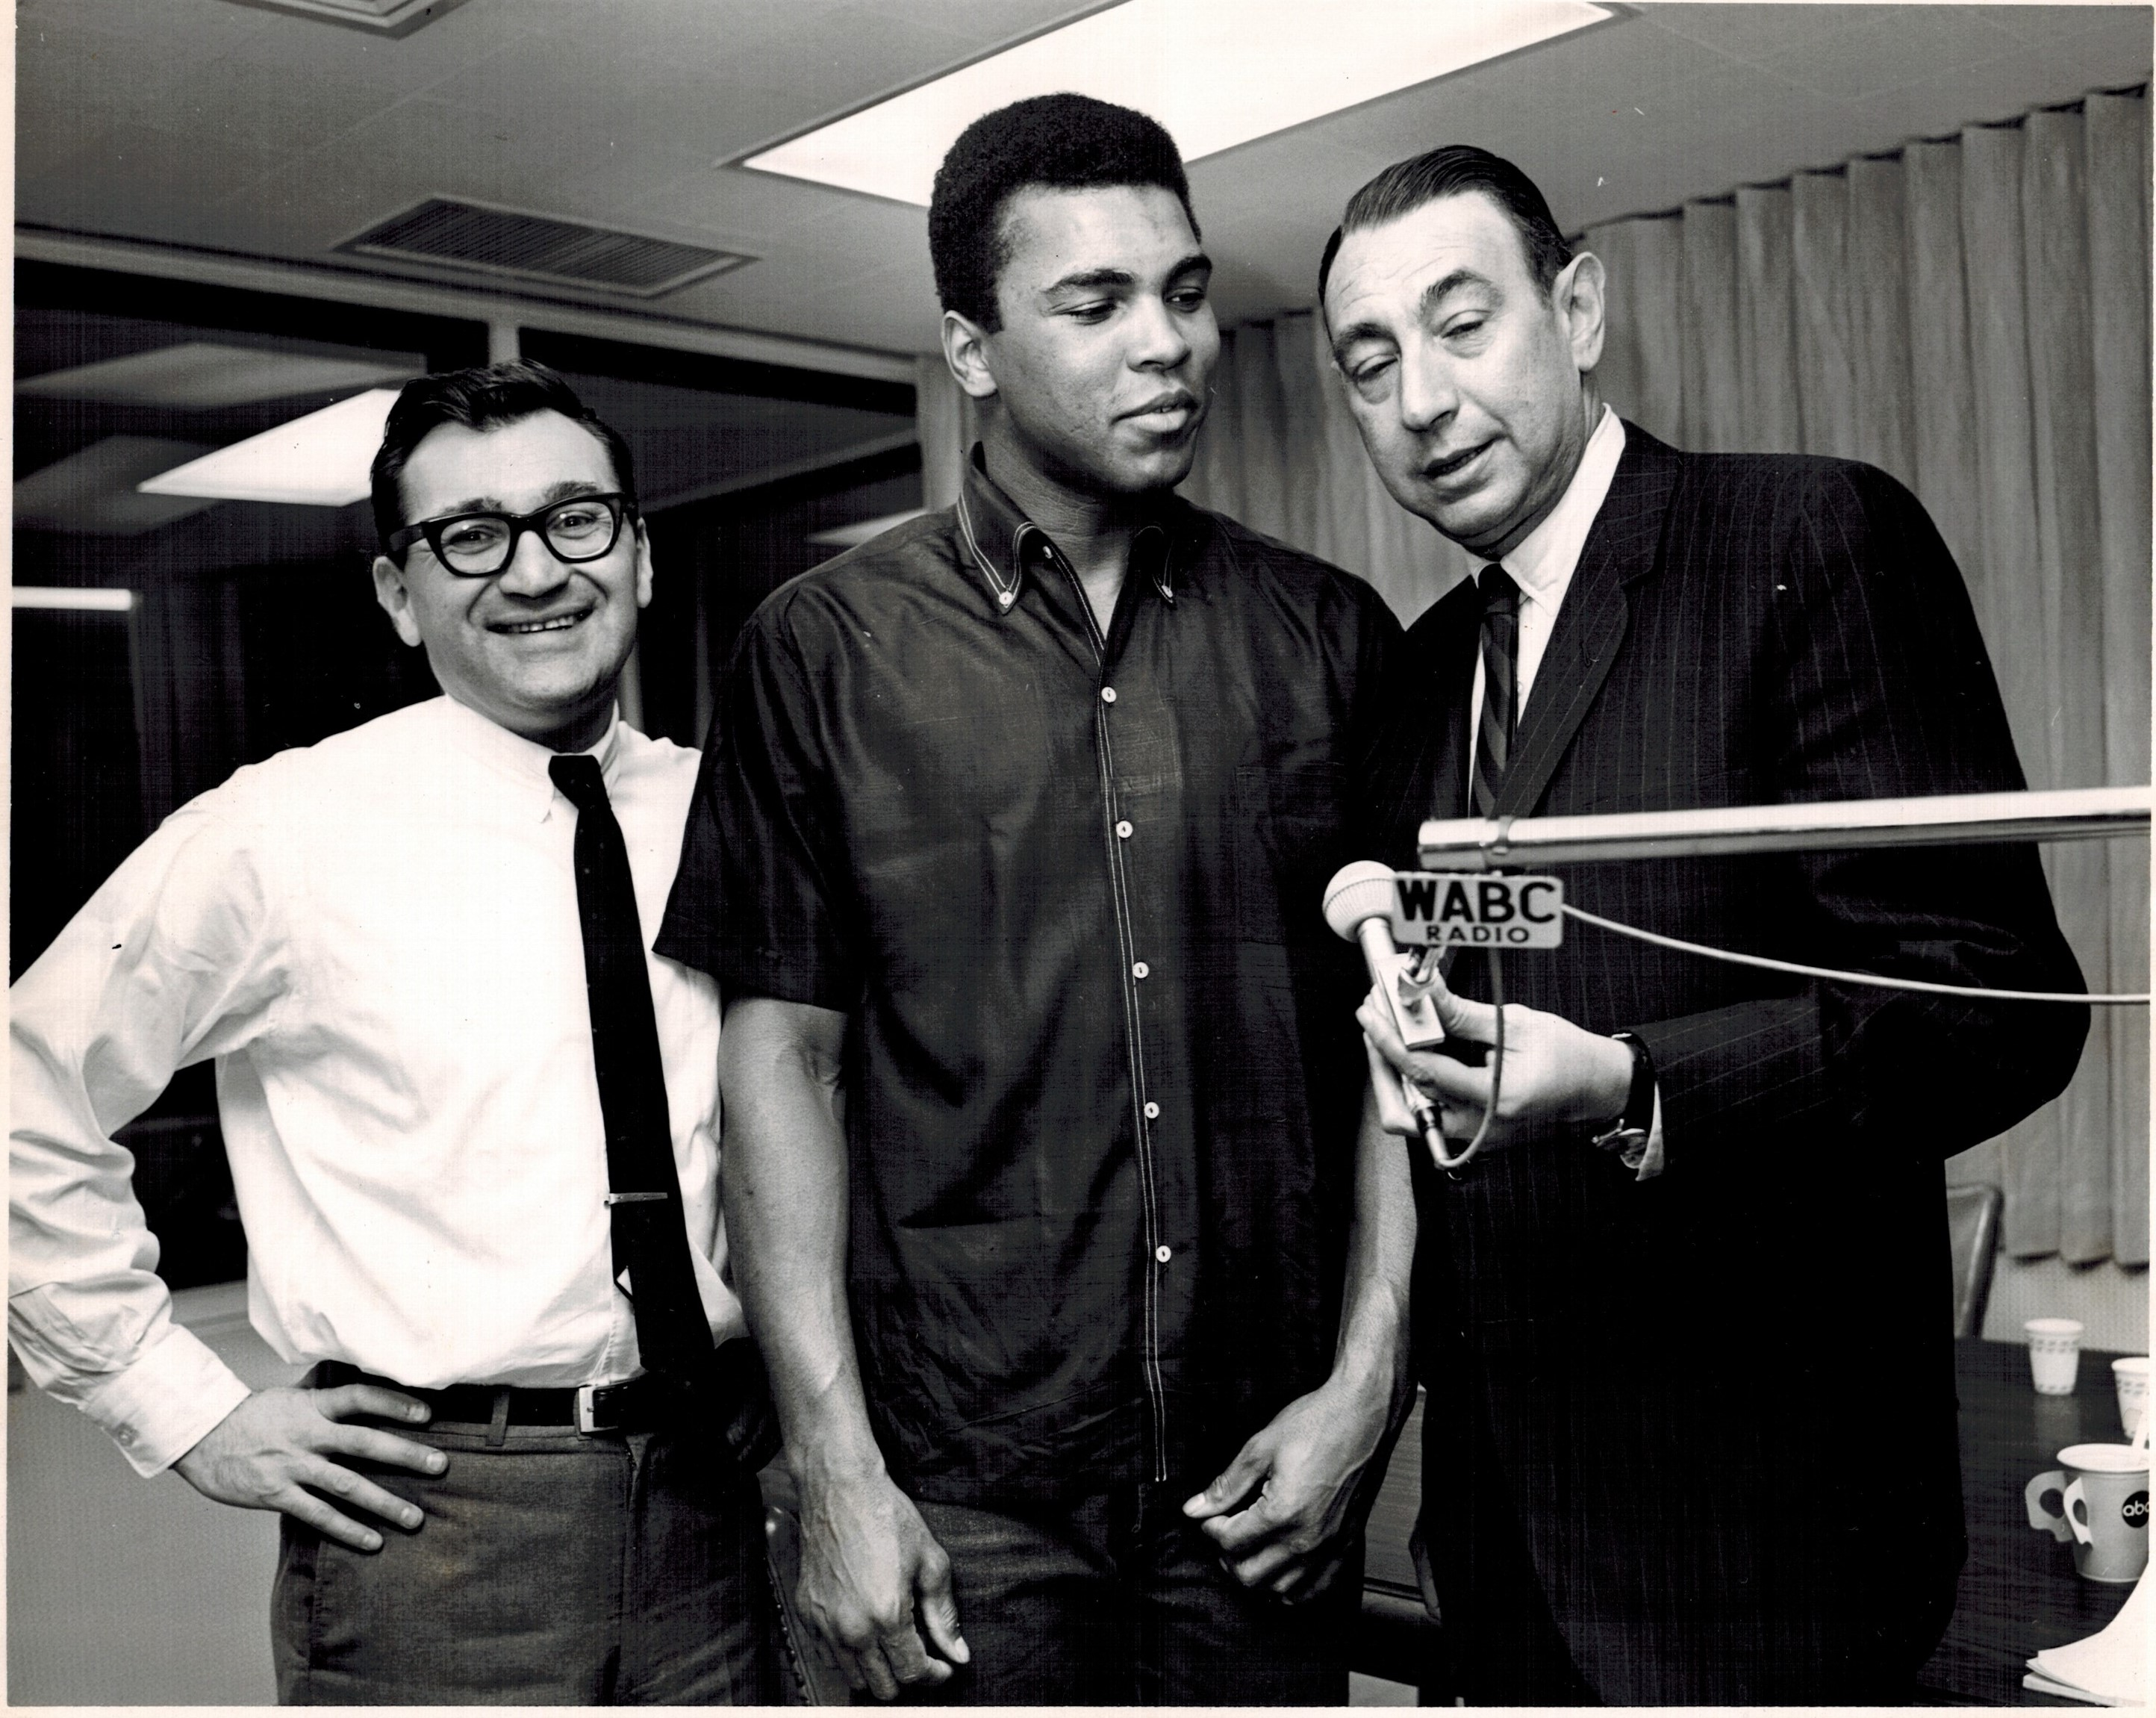 Muhammad Ali and Howard Cosell spend some time with Rick Sklar in the Musicradio WABC studios.